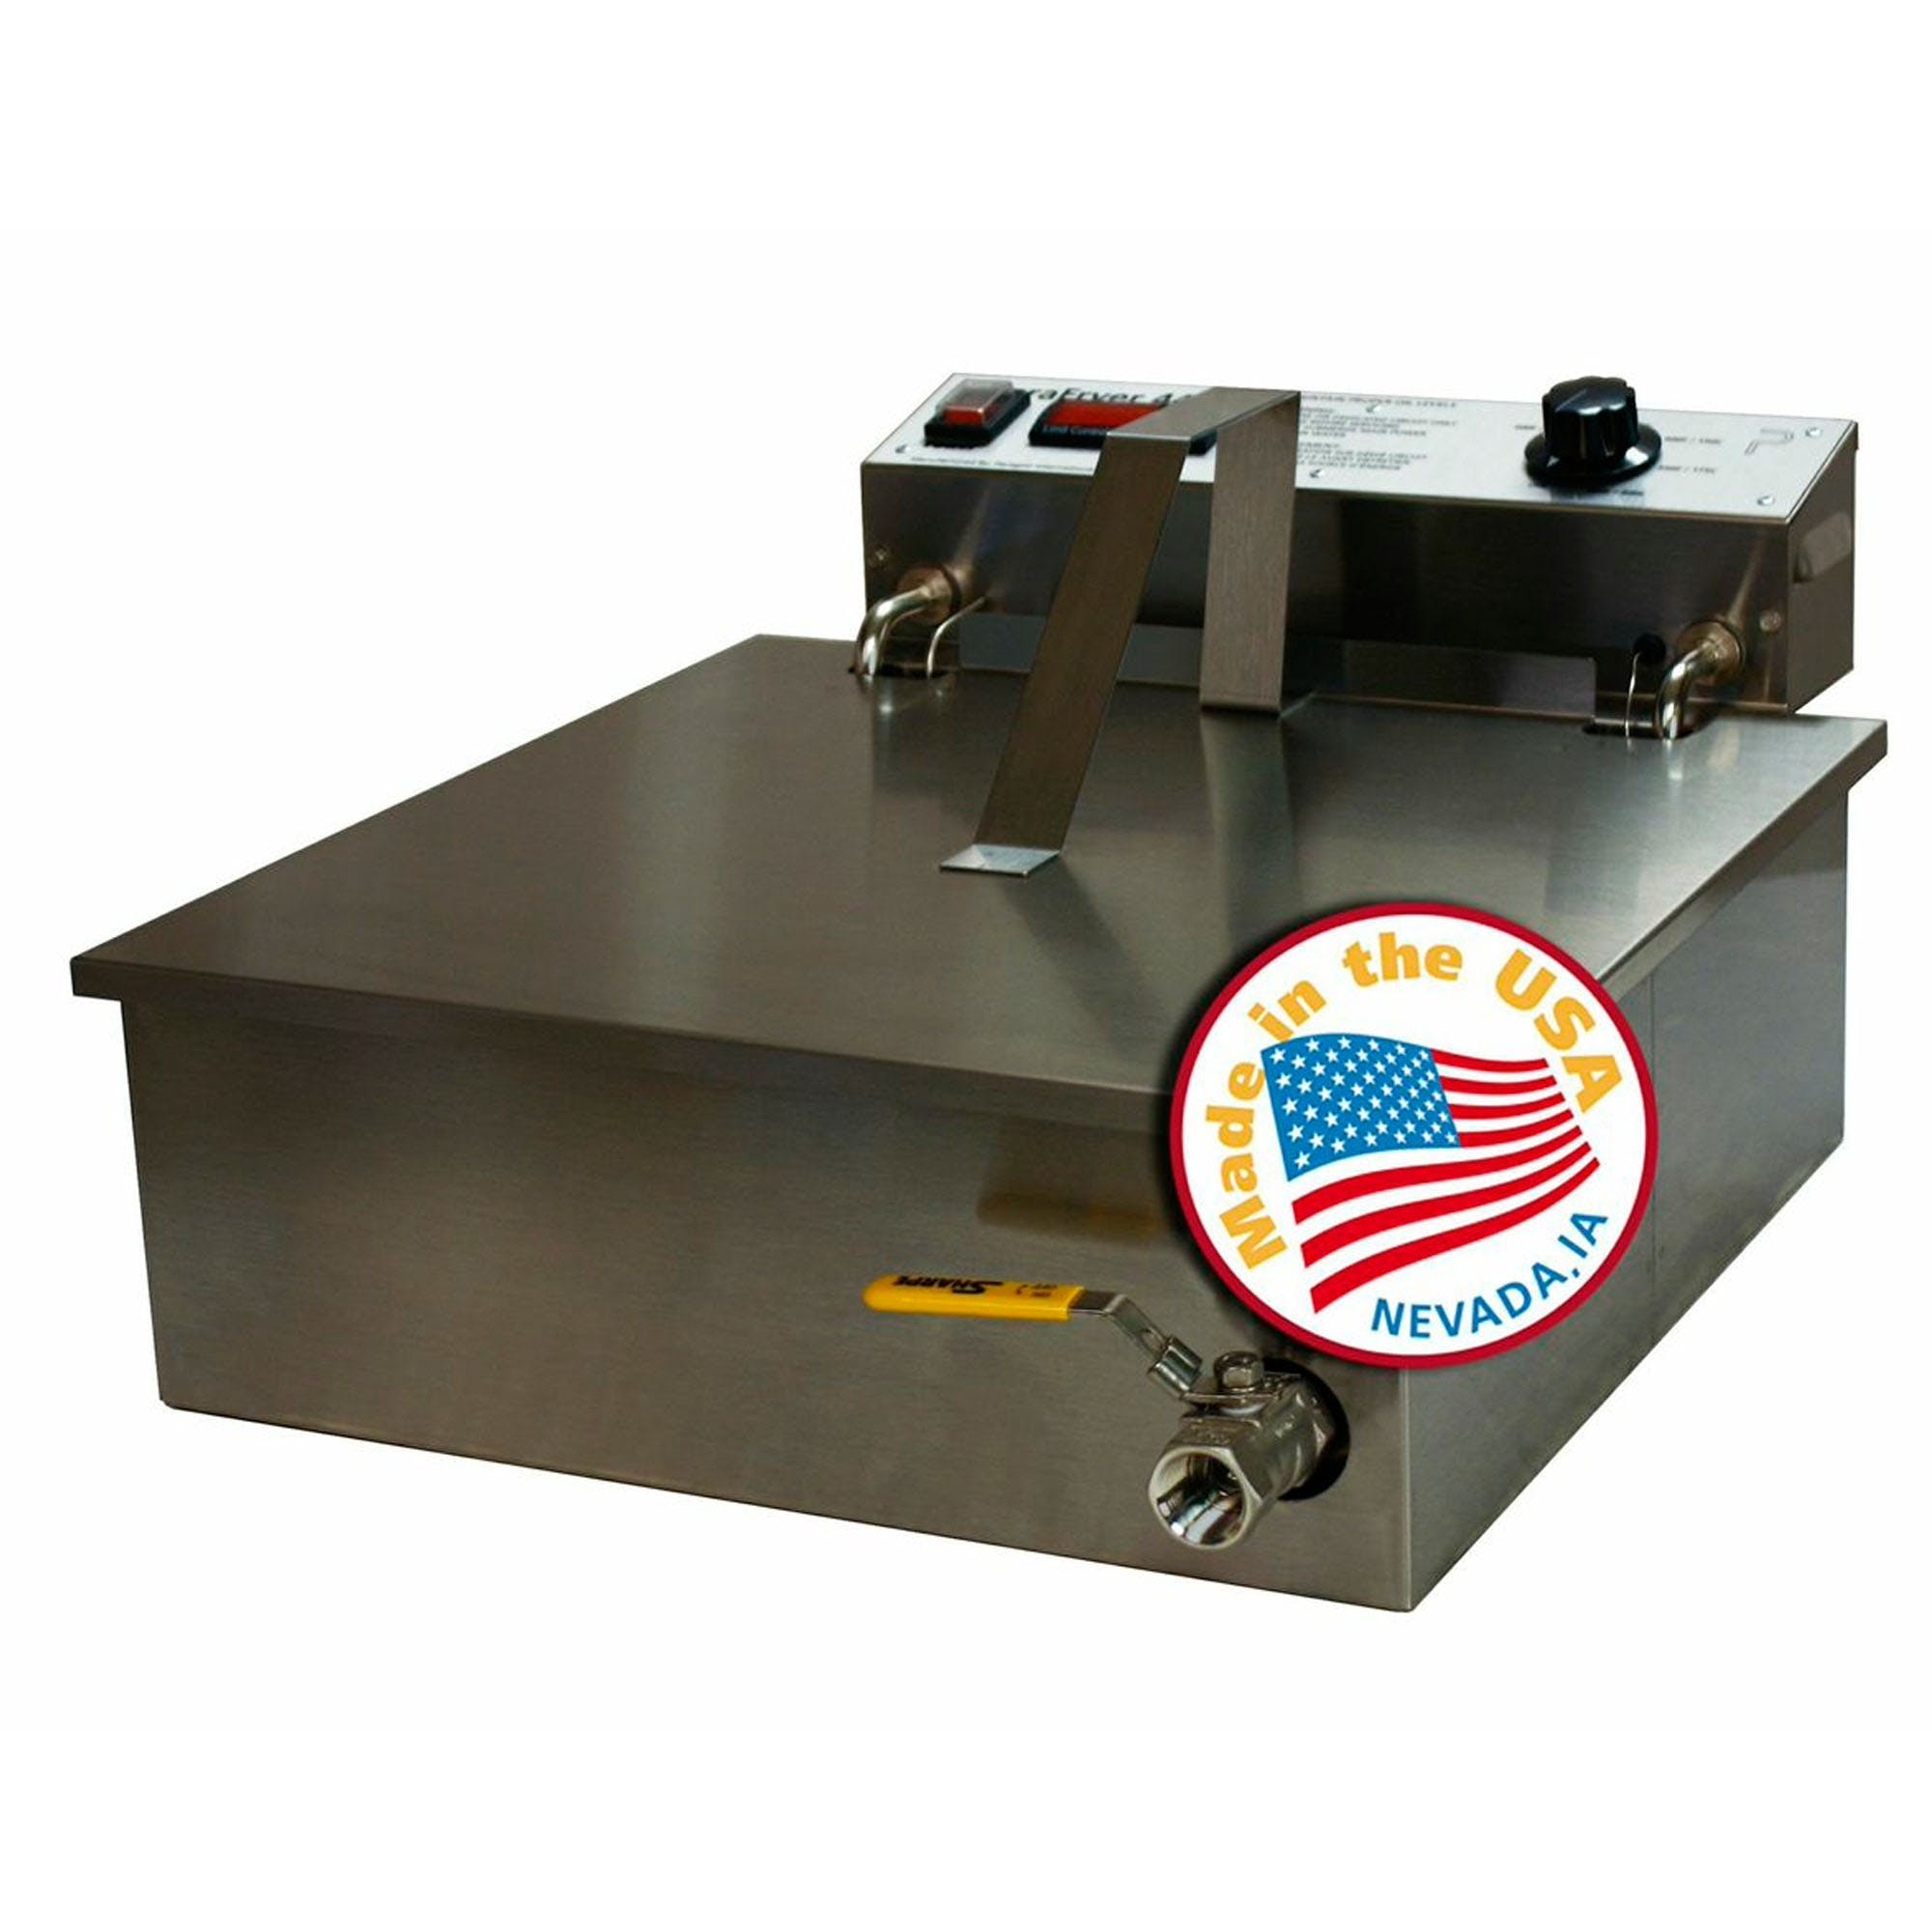 Paragon 9020 ParaFryer 4400 Funnel Cake Fryer Commercial fryer sold by Mission Restaurant Supply